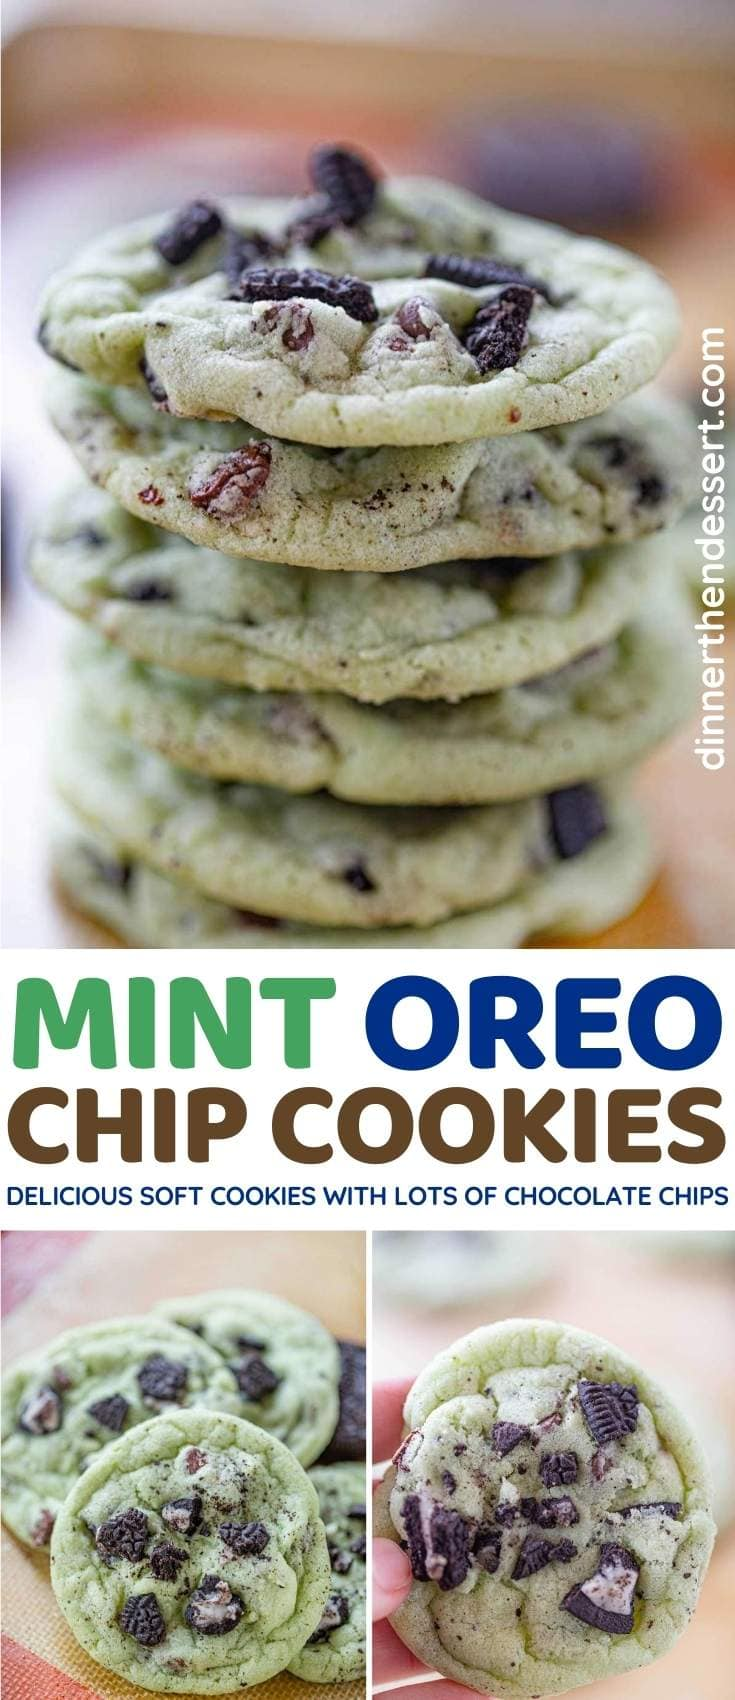 Mint Oreo Chip Cookies collage